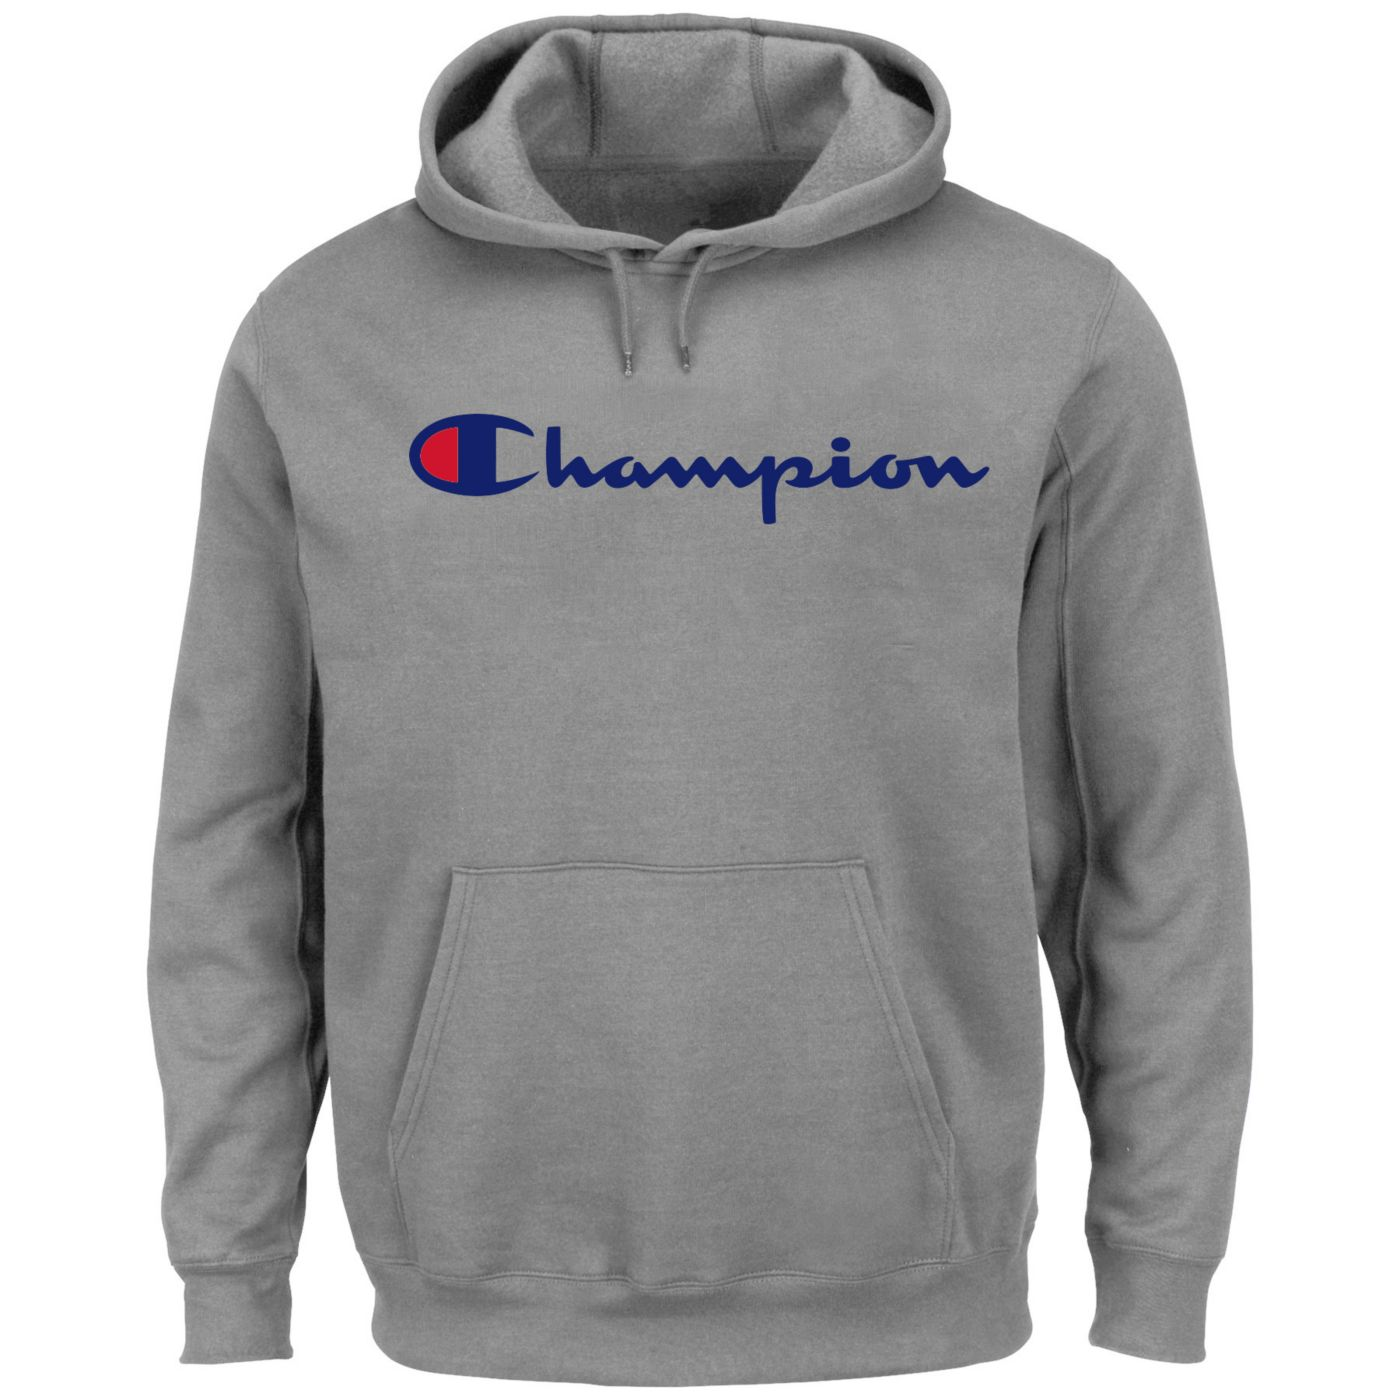 Champion Men's Big & Tall Graphic Hoodie (Regular and Big & Tall)